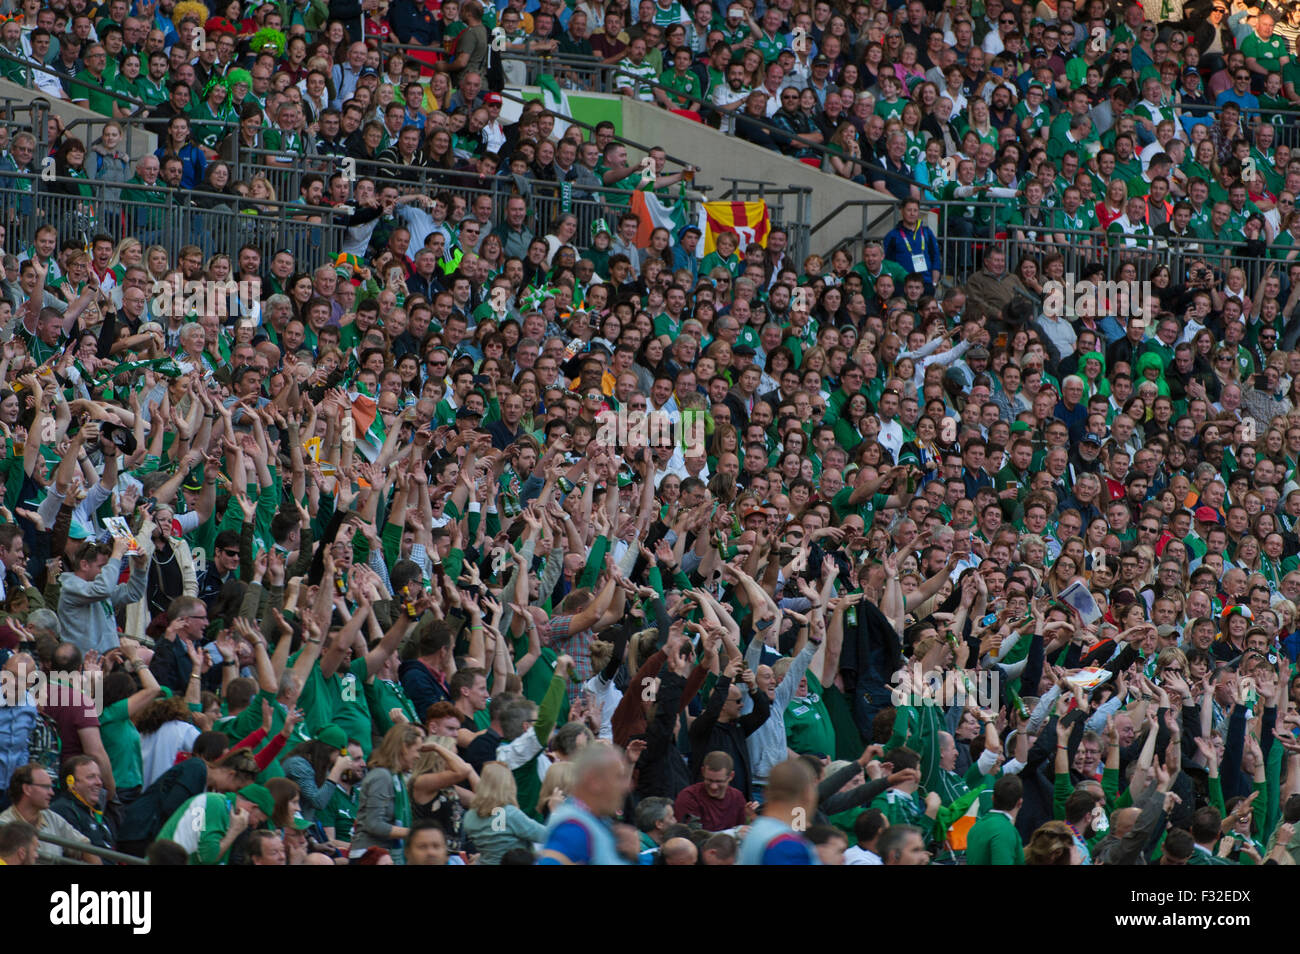 Wembley Stadium, London, UK. 27th September, 2015. Capacity crowd Mexican wave, Ireland v Romania Rugby World Cup - Stock Image